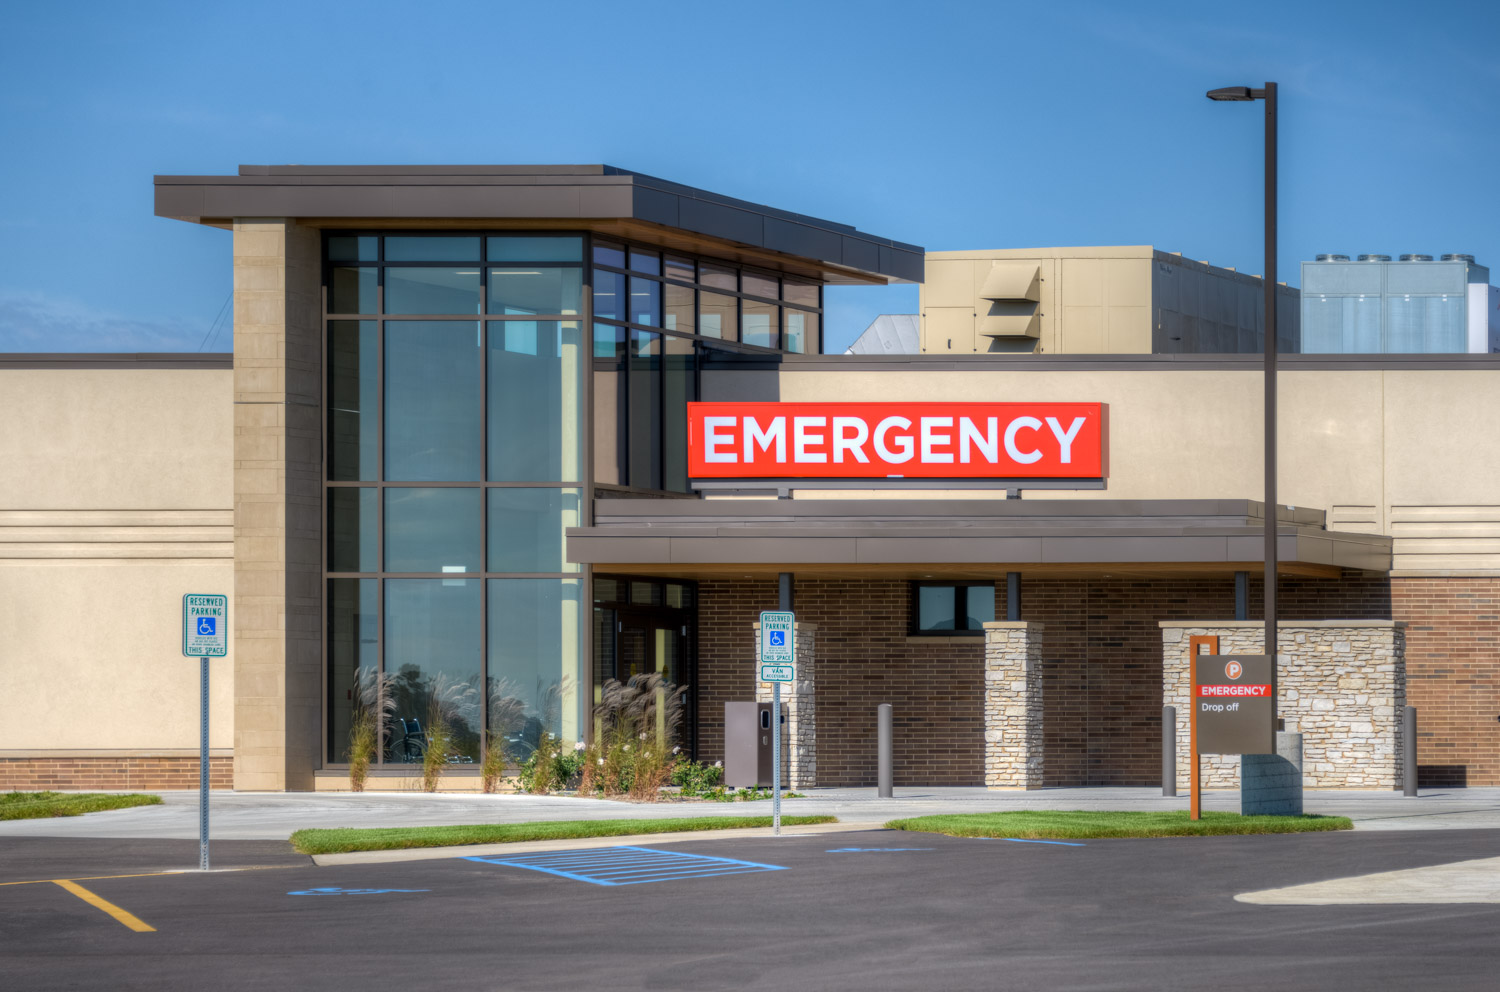 20160918_westernwisconsinhealth_replacementhospital_0290_hdr-edit_150dpi_1500px